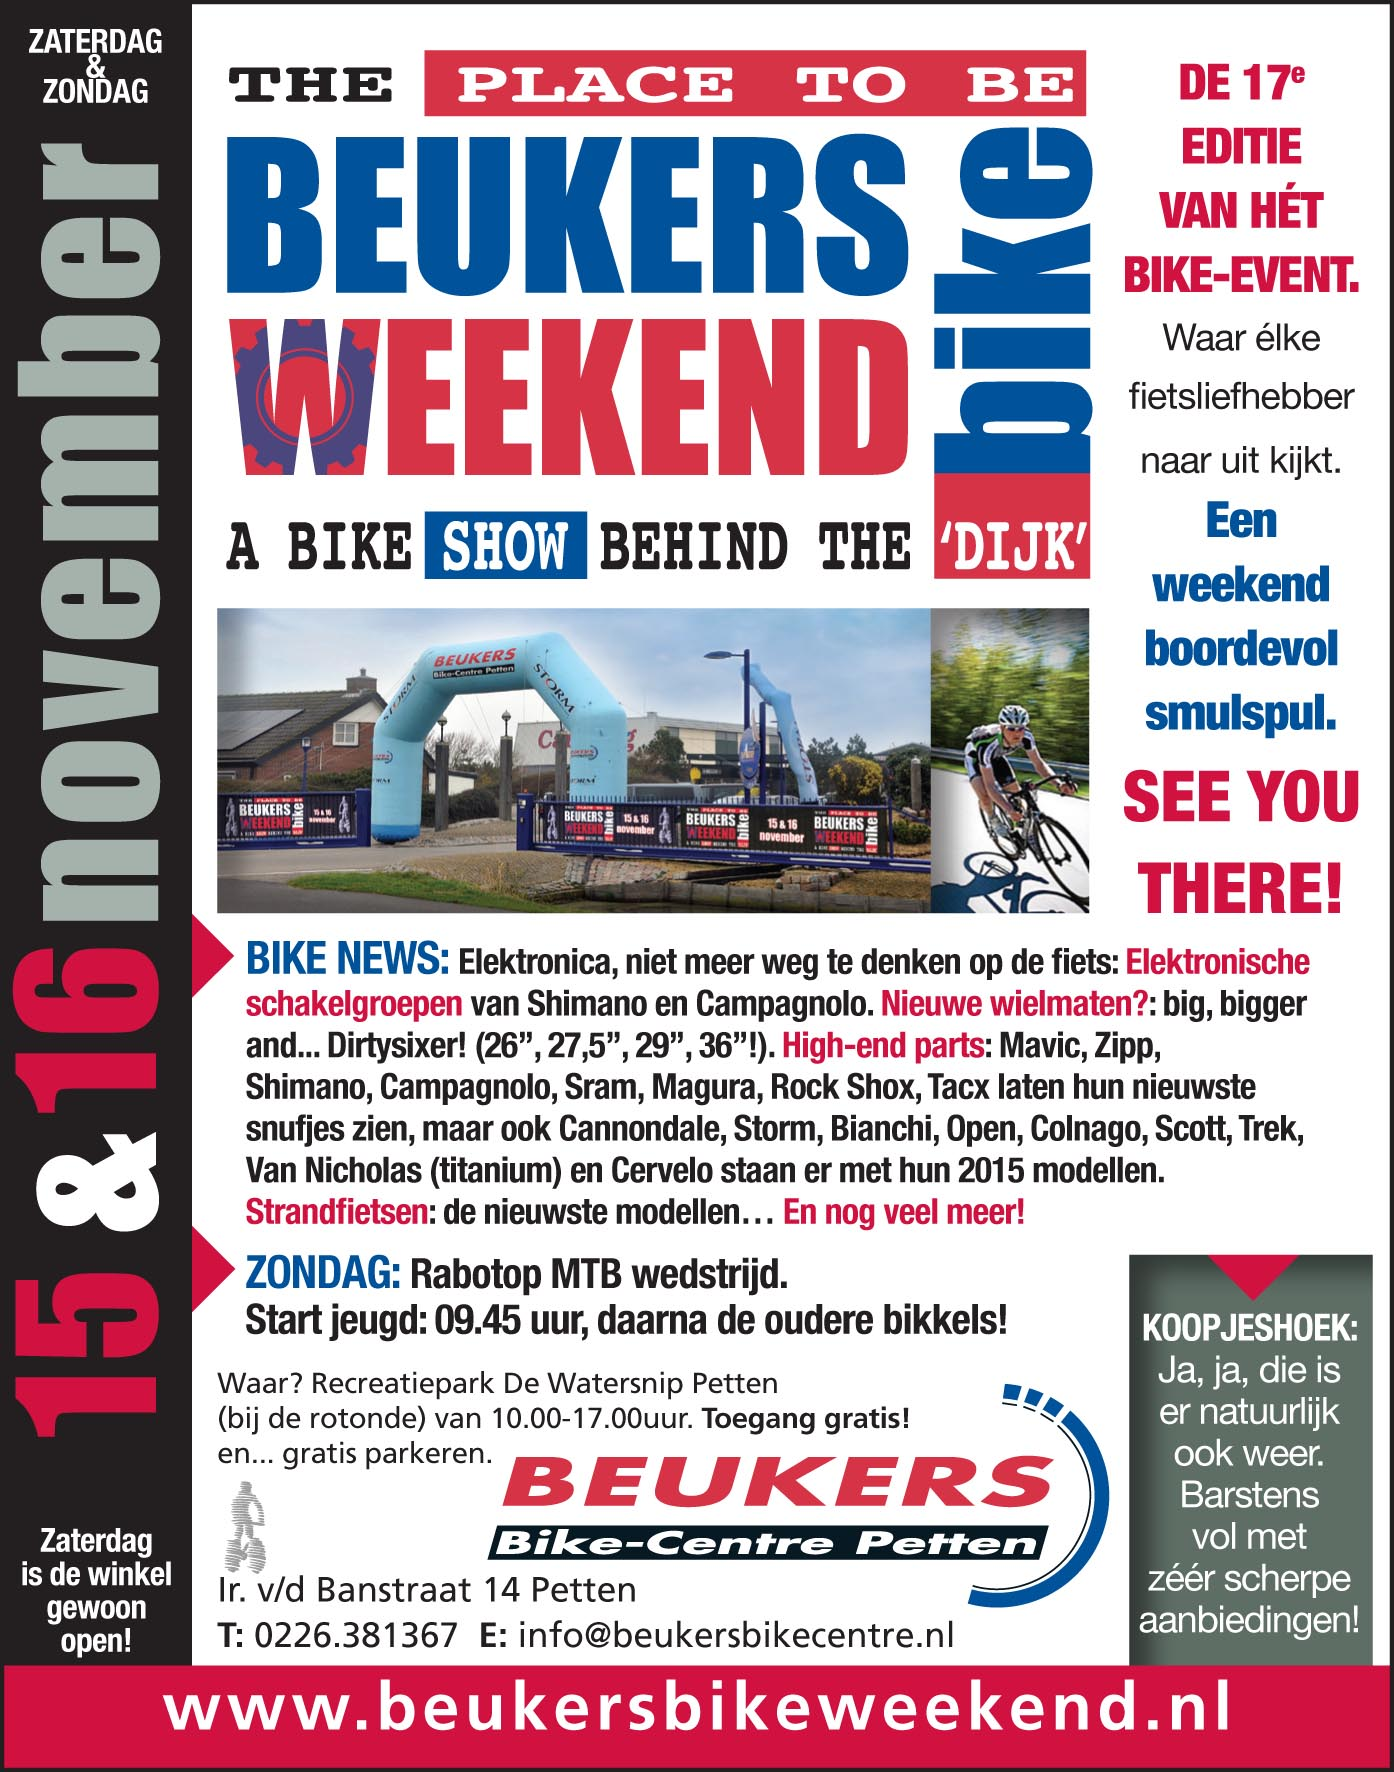 Beukers Bike Weekend 2014